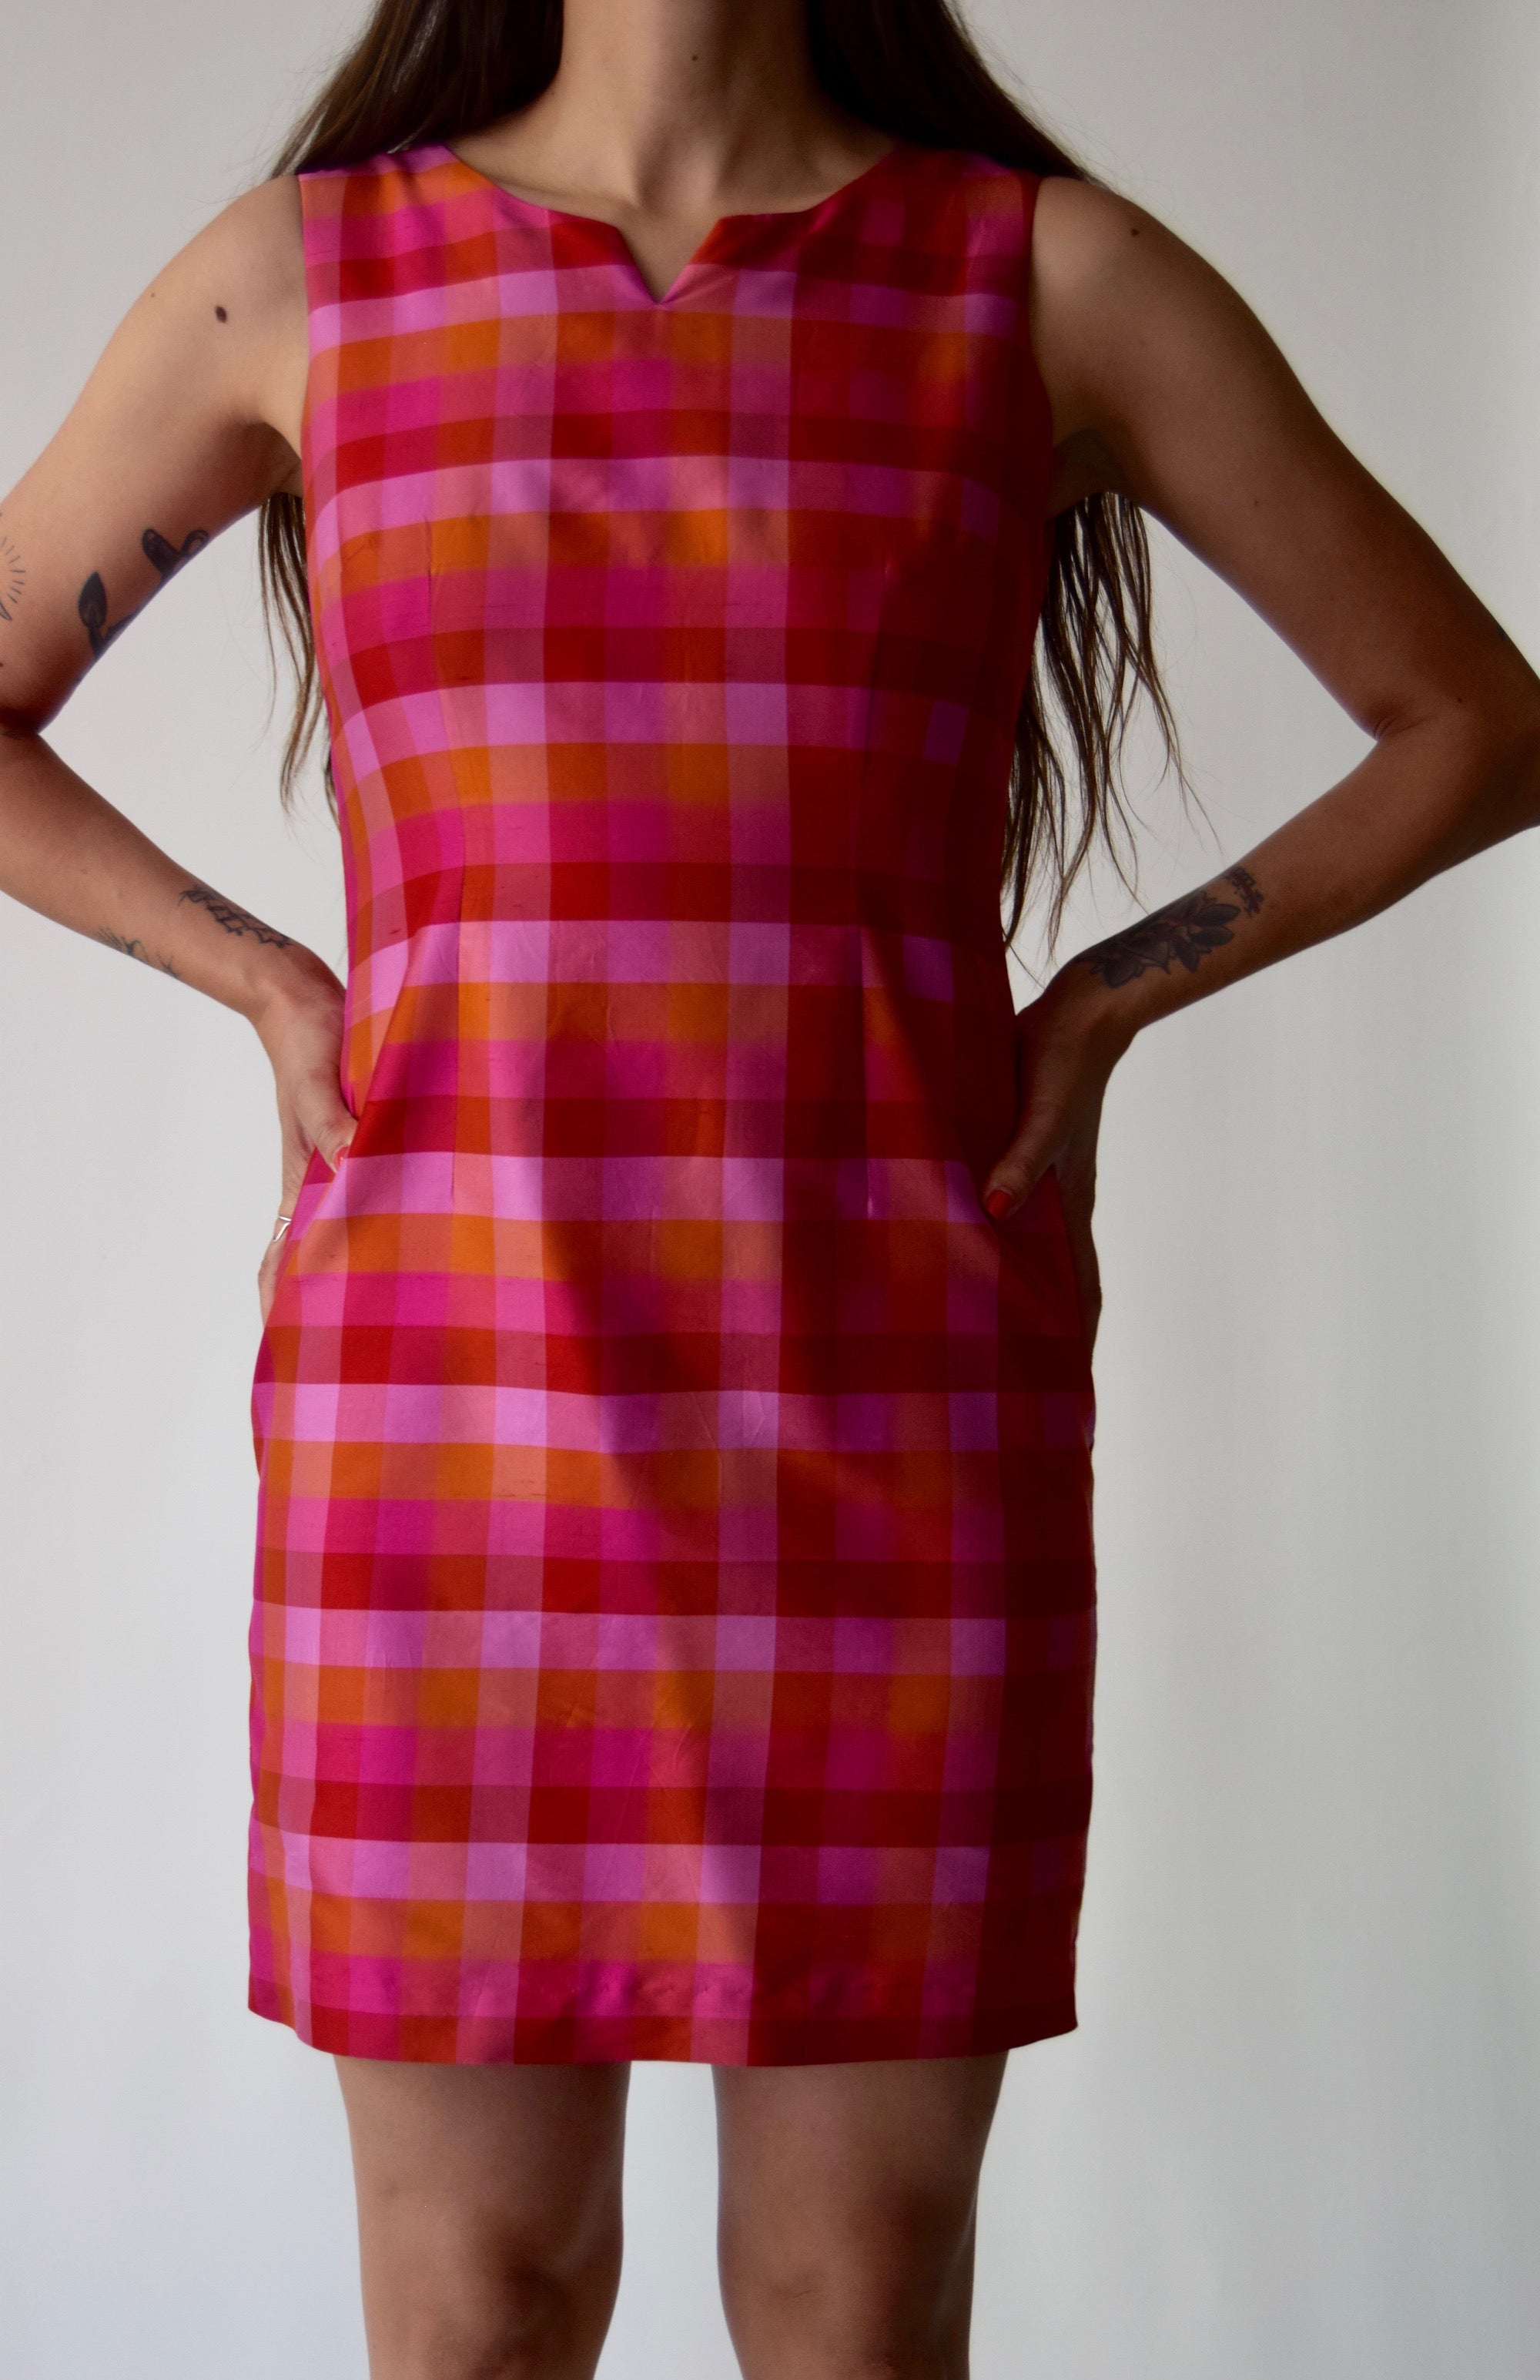 Sunset Check Silk Dress FREE SHIPPING